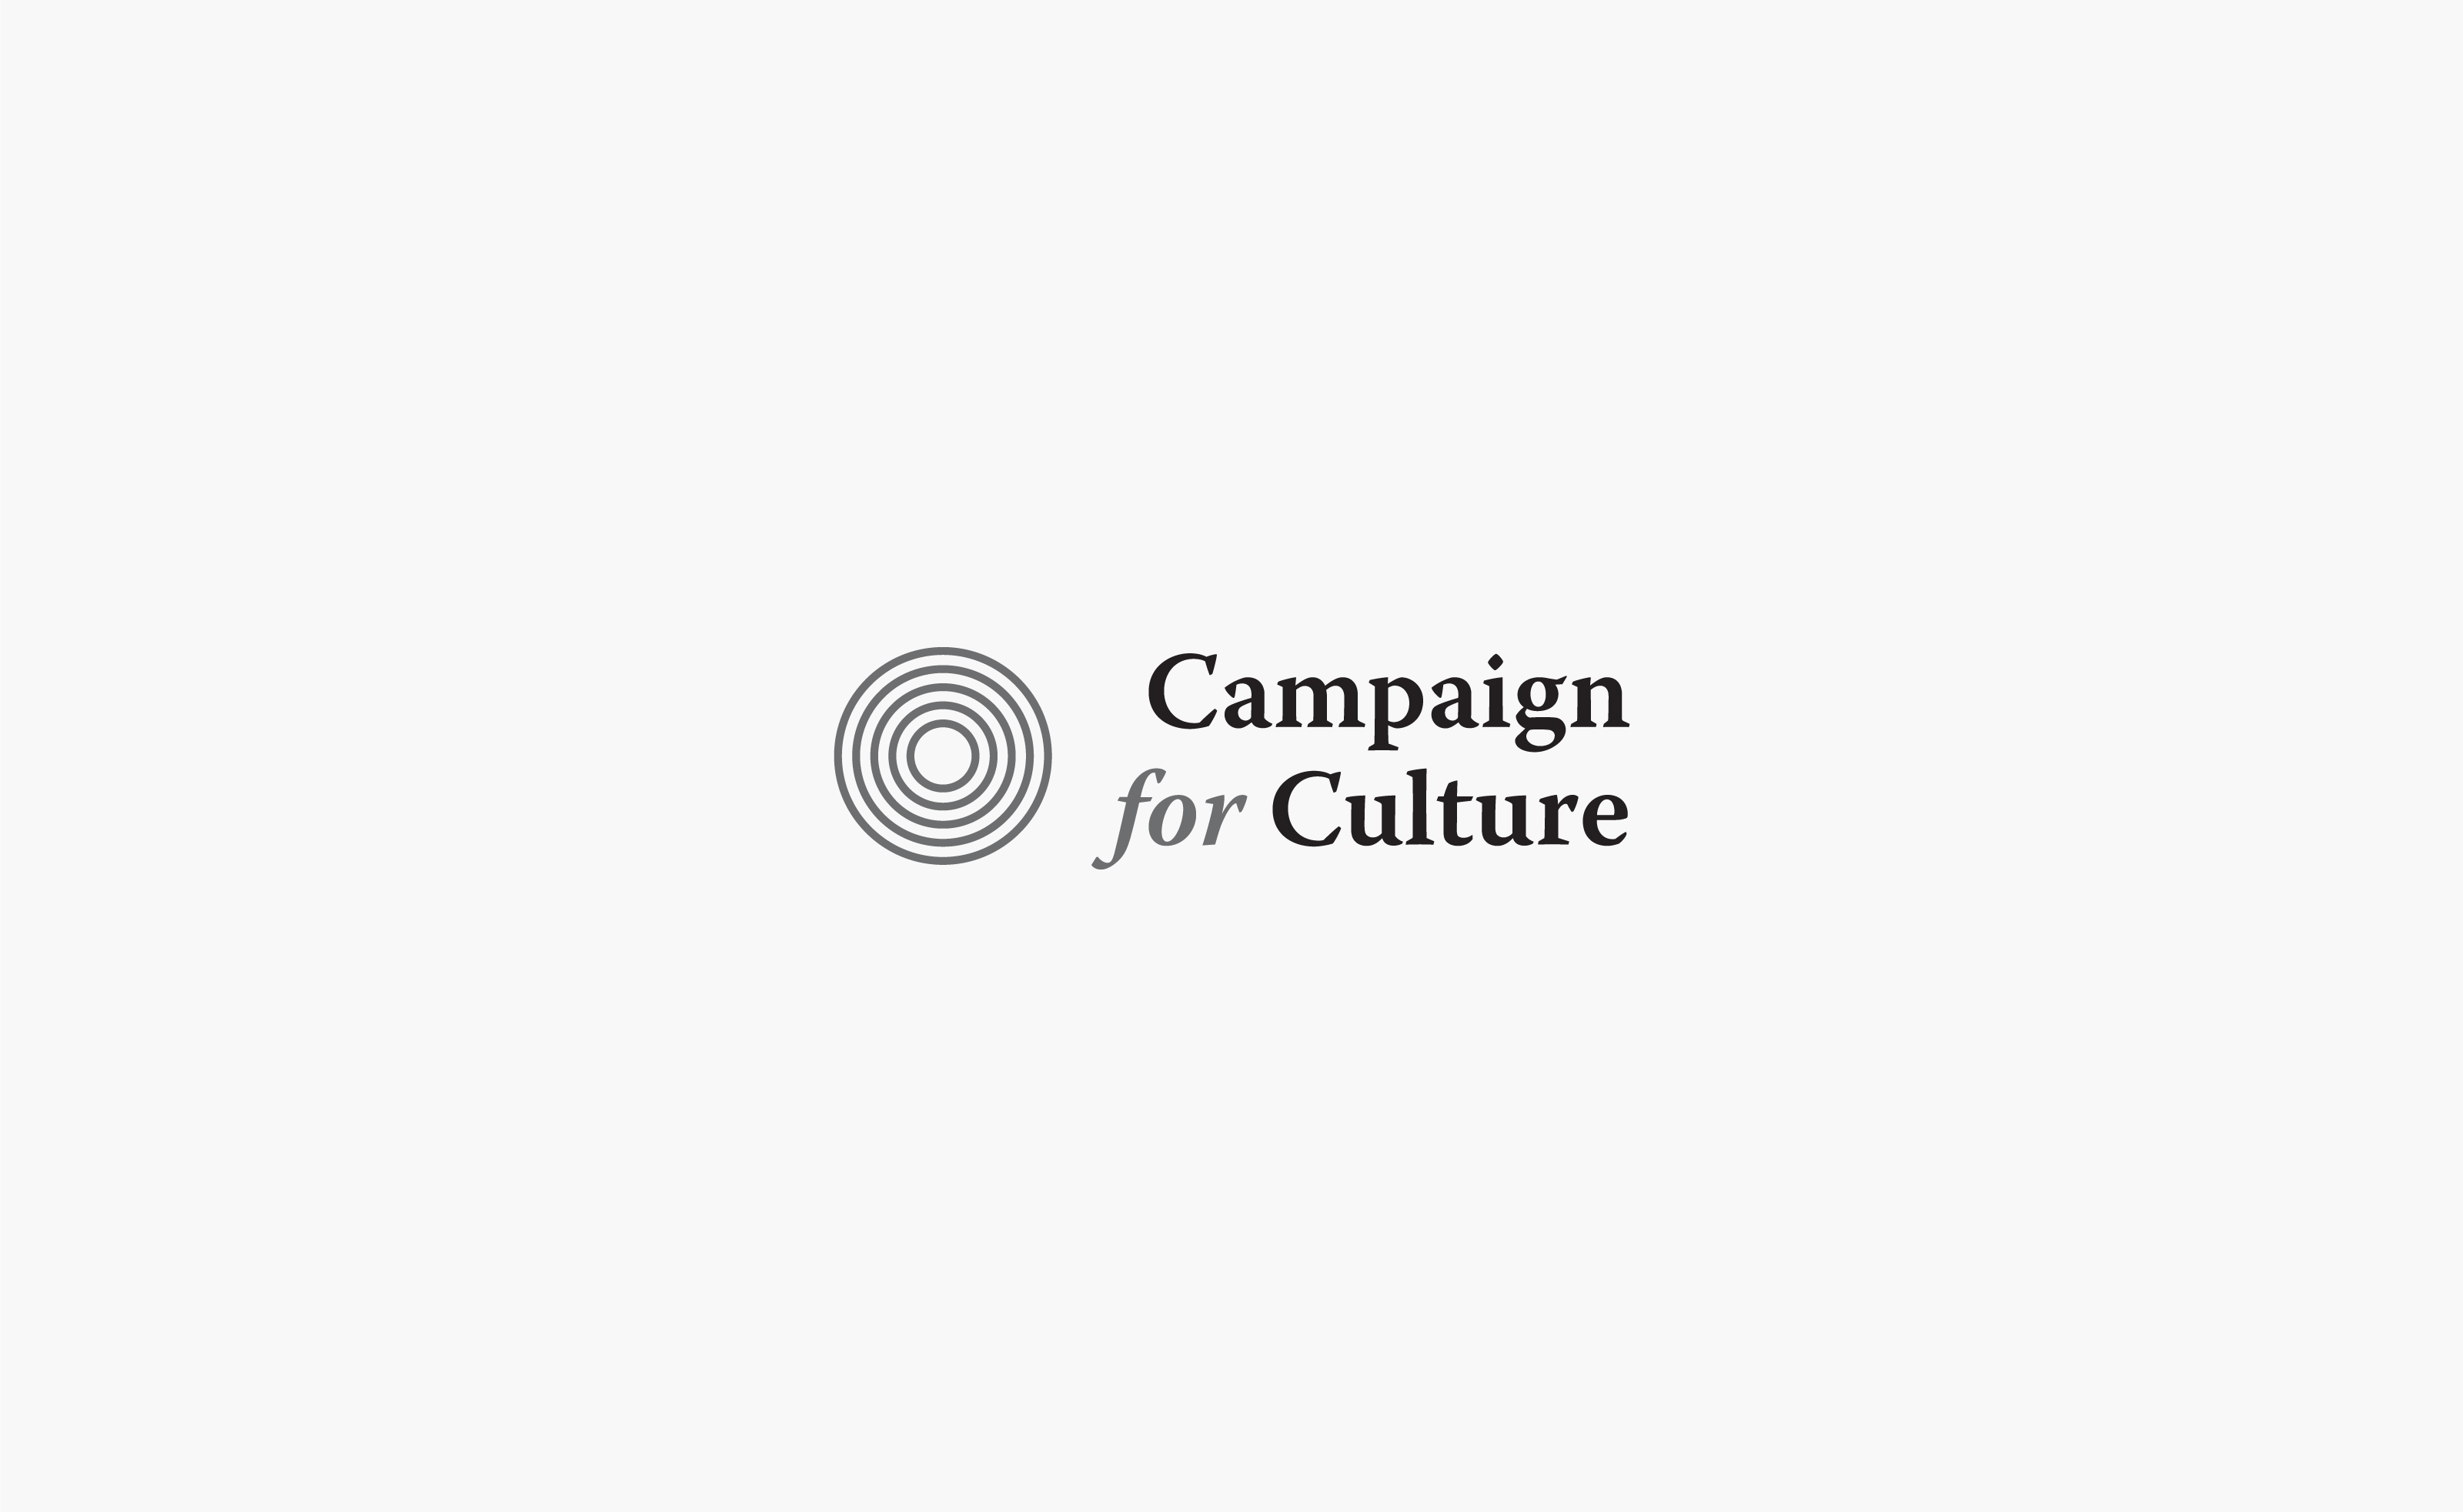 Campaign for Culture logo centered on a light grey background — by Yagnyuk.